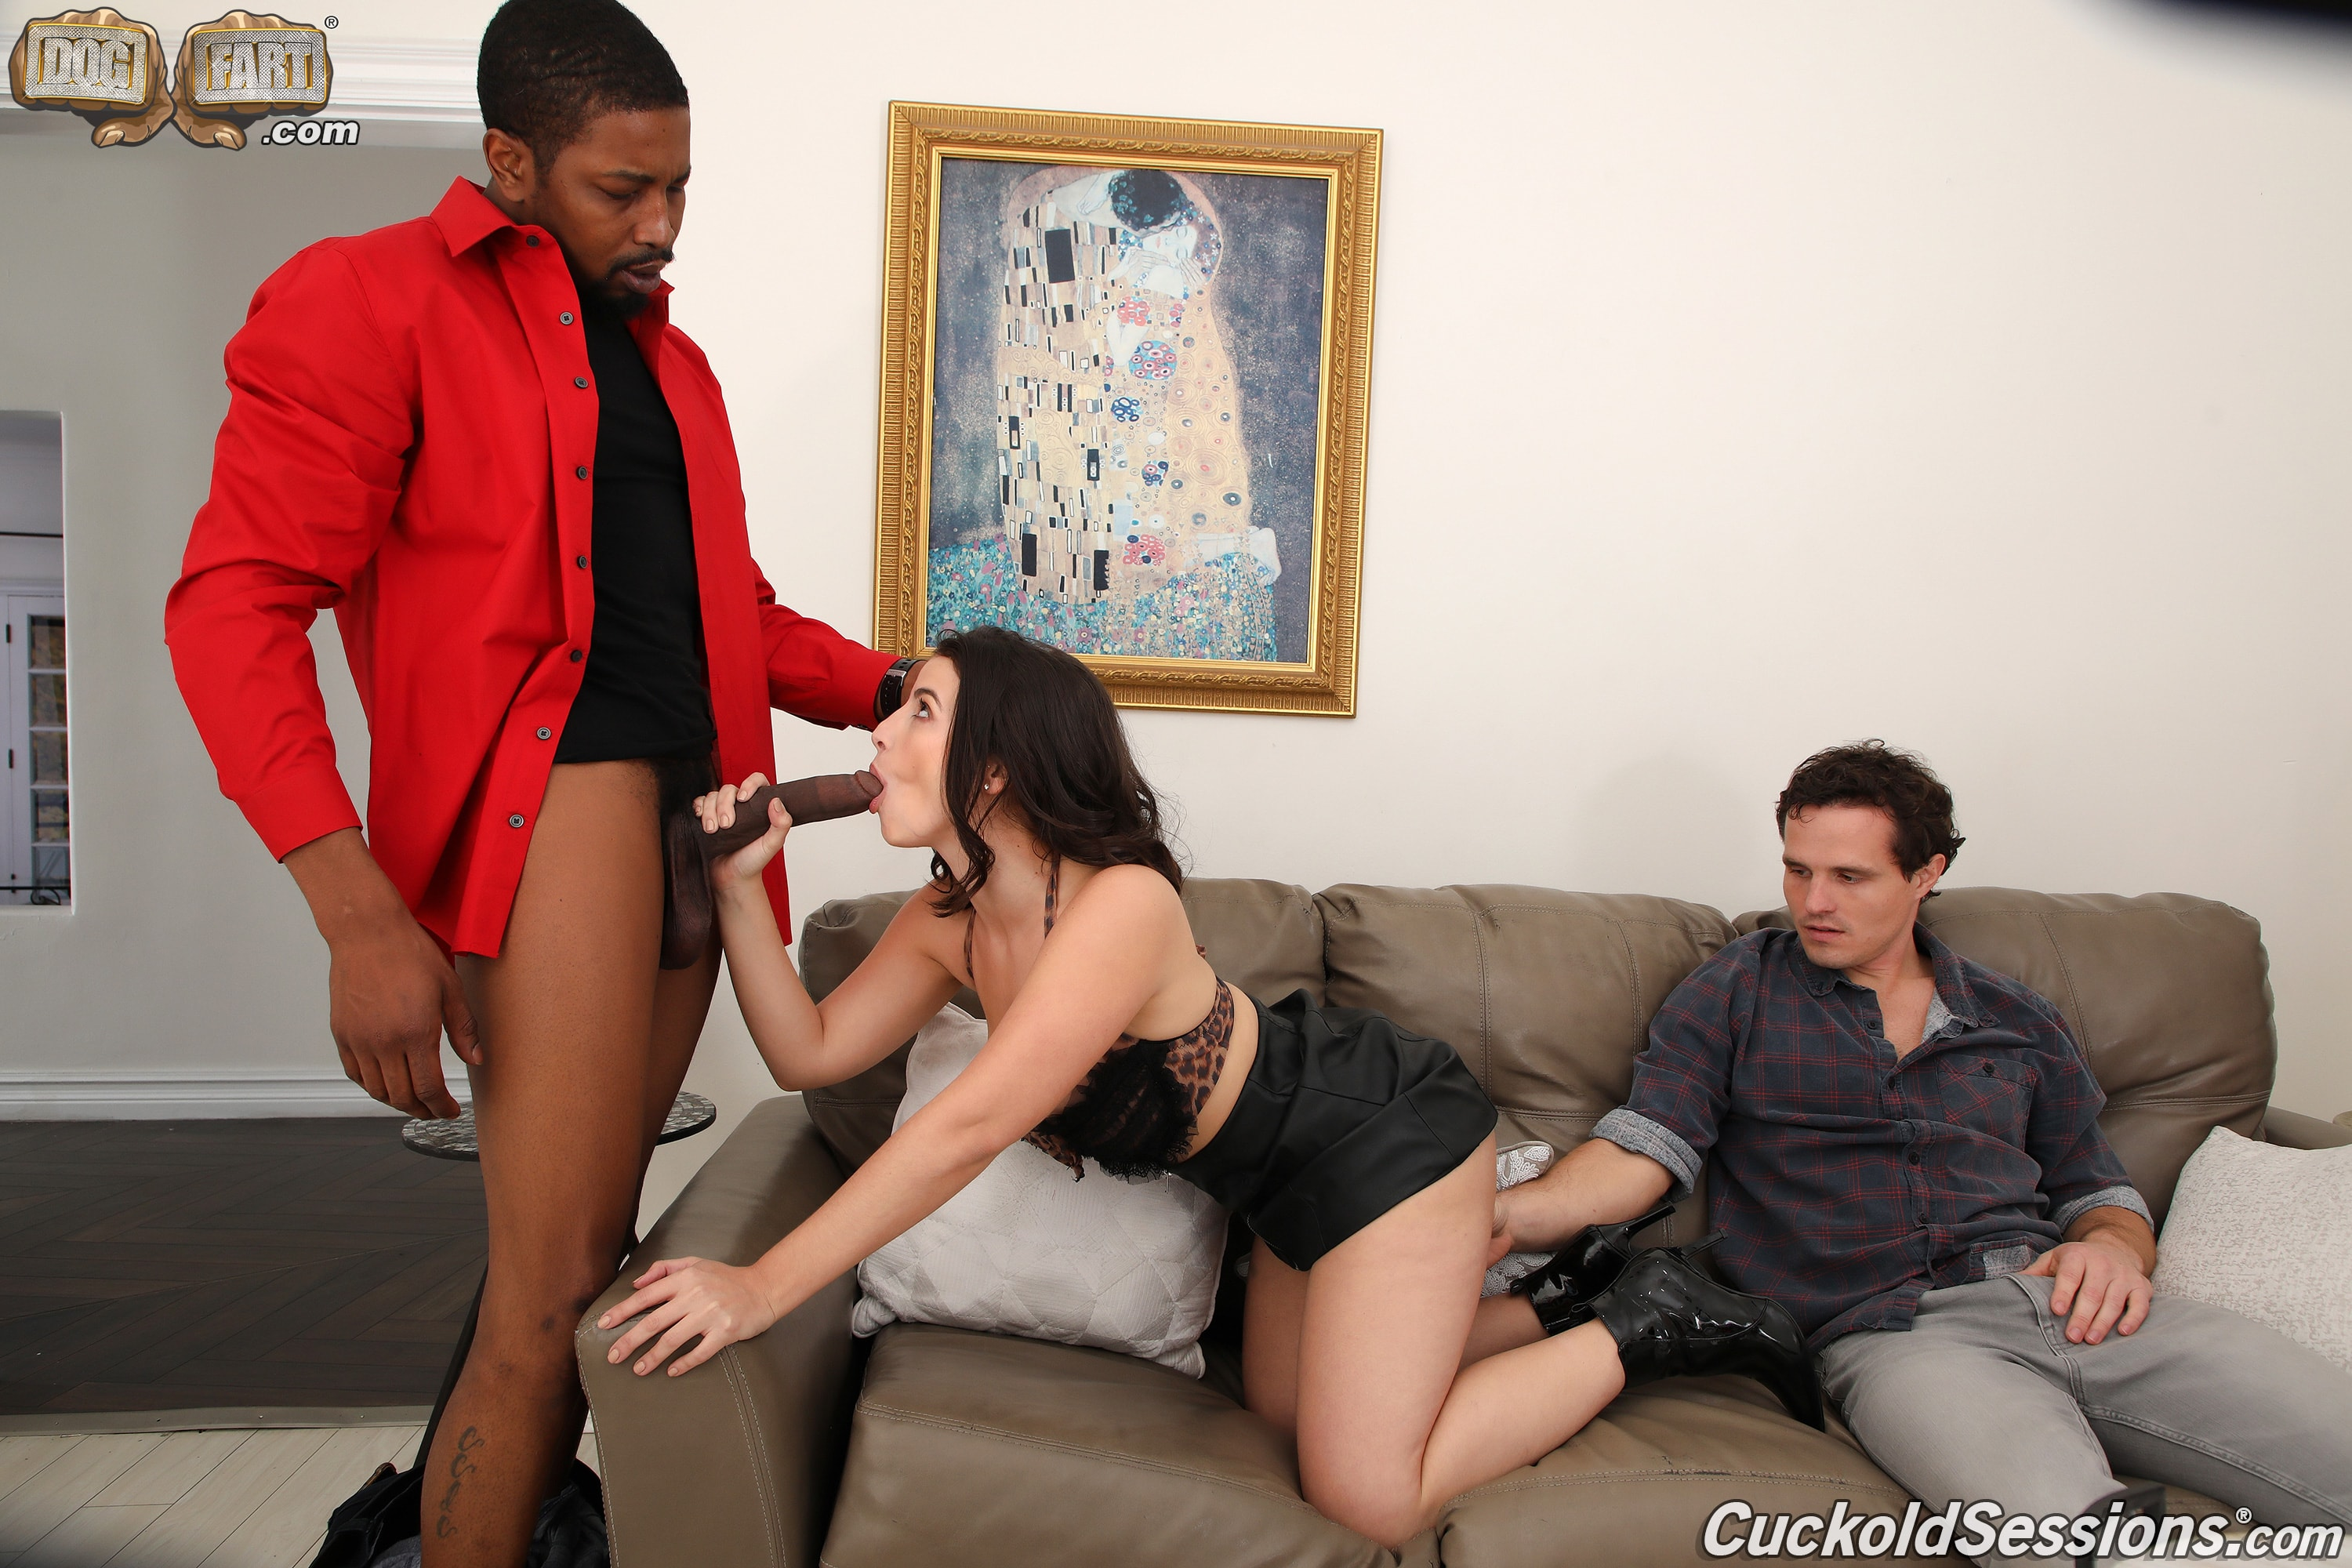 Dogfart '- Cuckold Sessions' starring Lasirena69 (Photo 6)